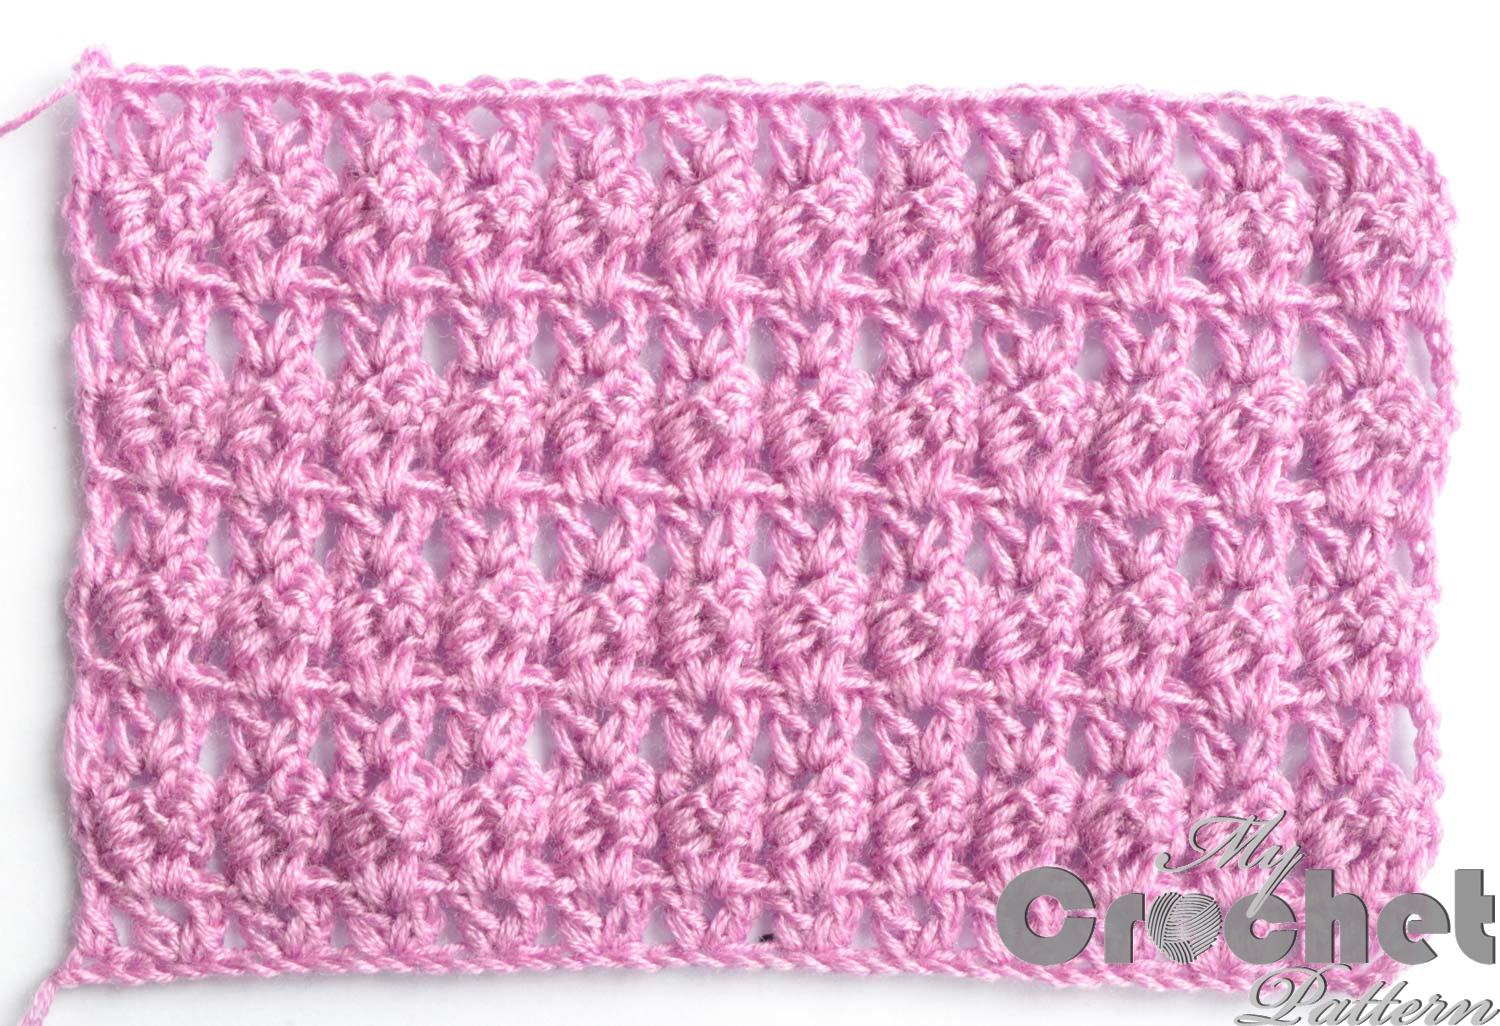 Photo of pink crochet openwork pattern with cluster and shell